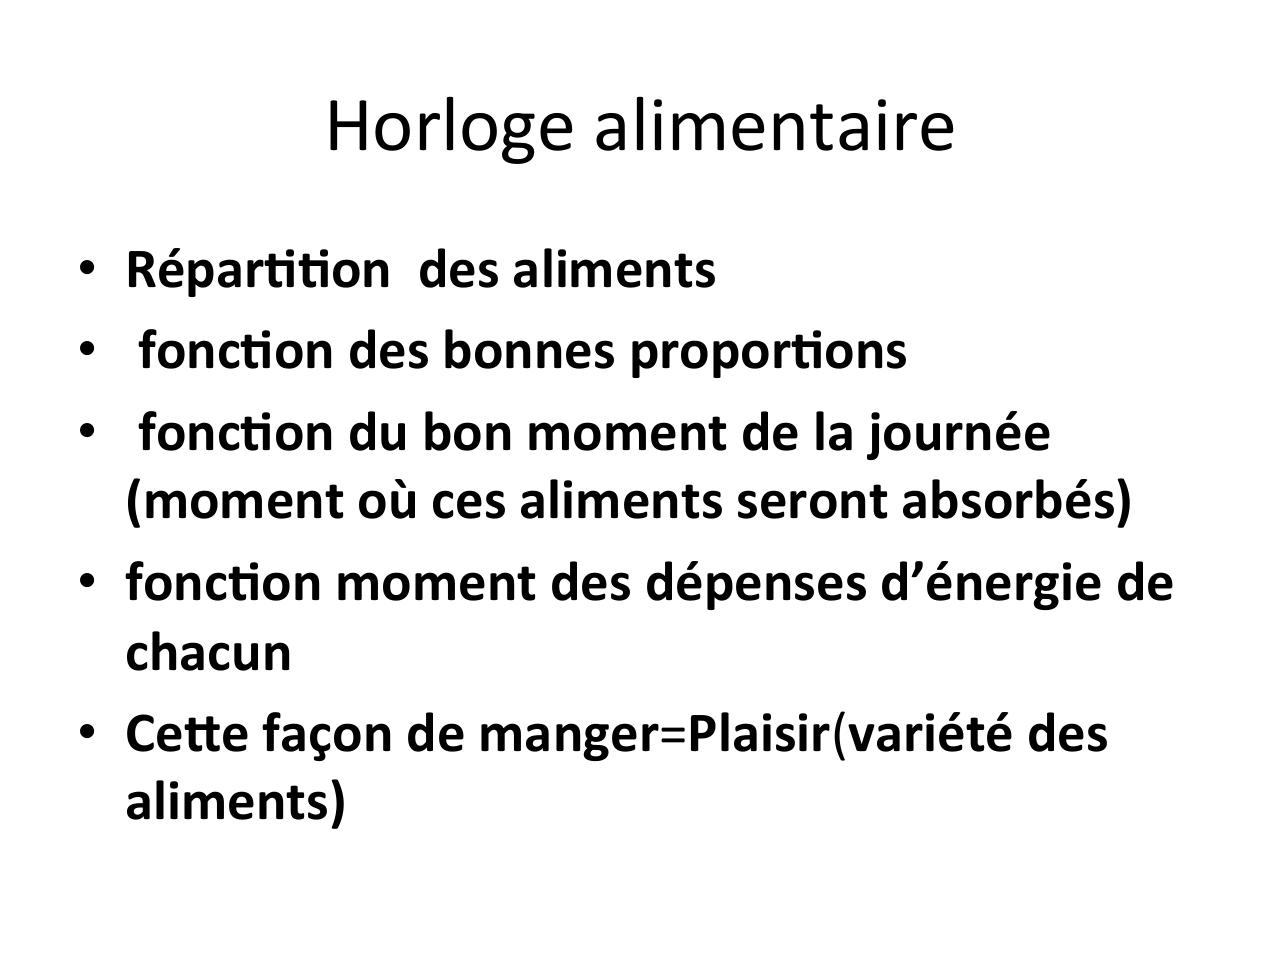 5application pratique chrononutrition - copie.pdf - page 4/34